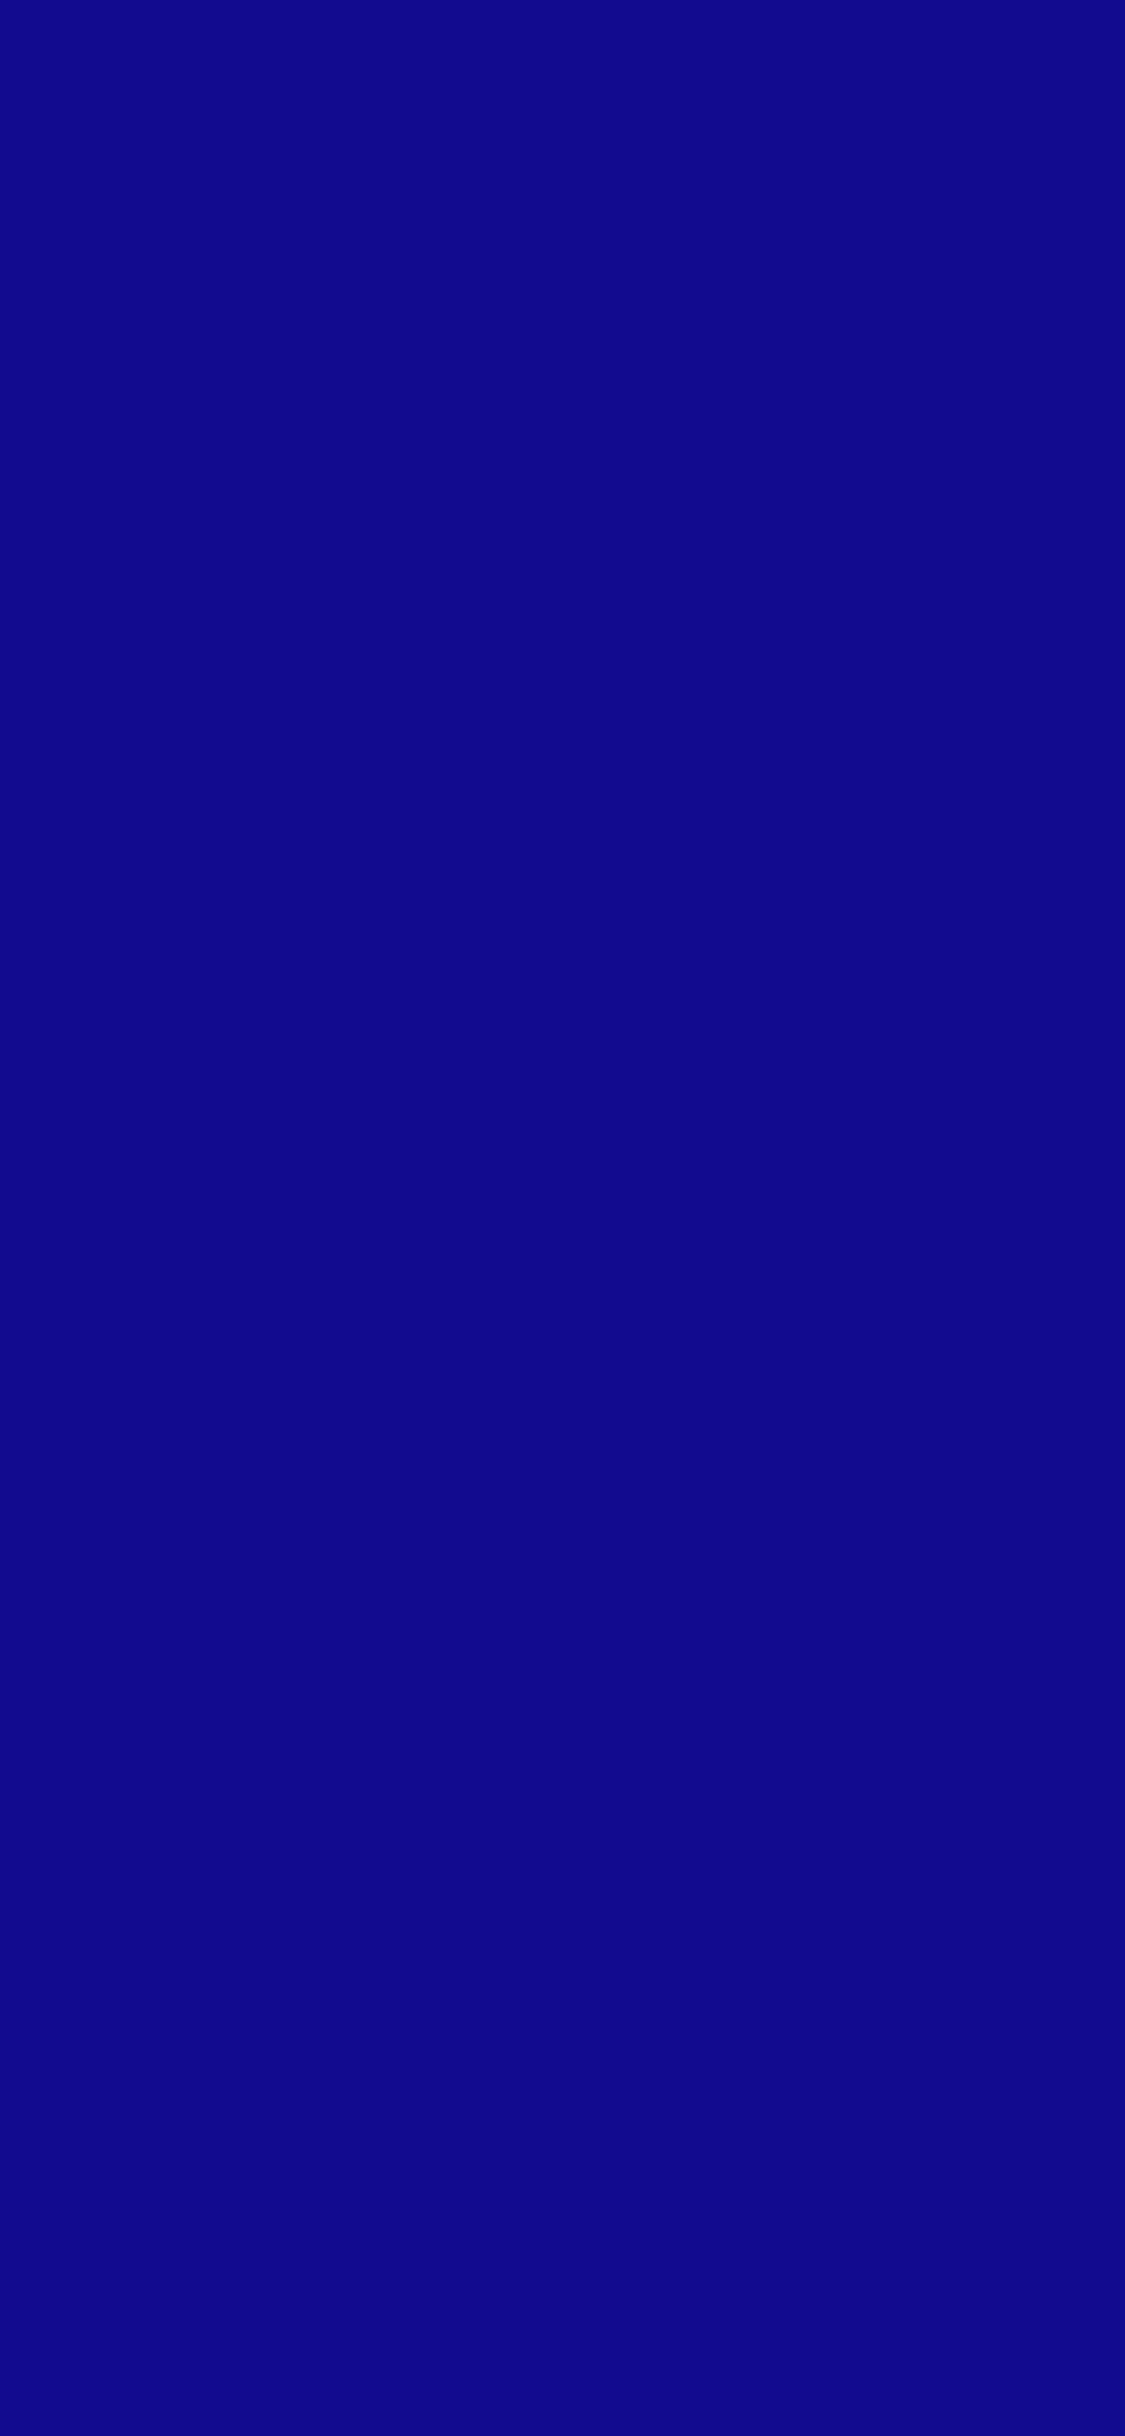 1125x2436 Ultramarine Solid Color Background 1125x2436